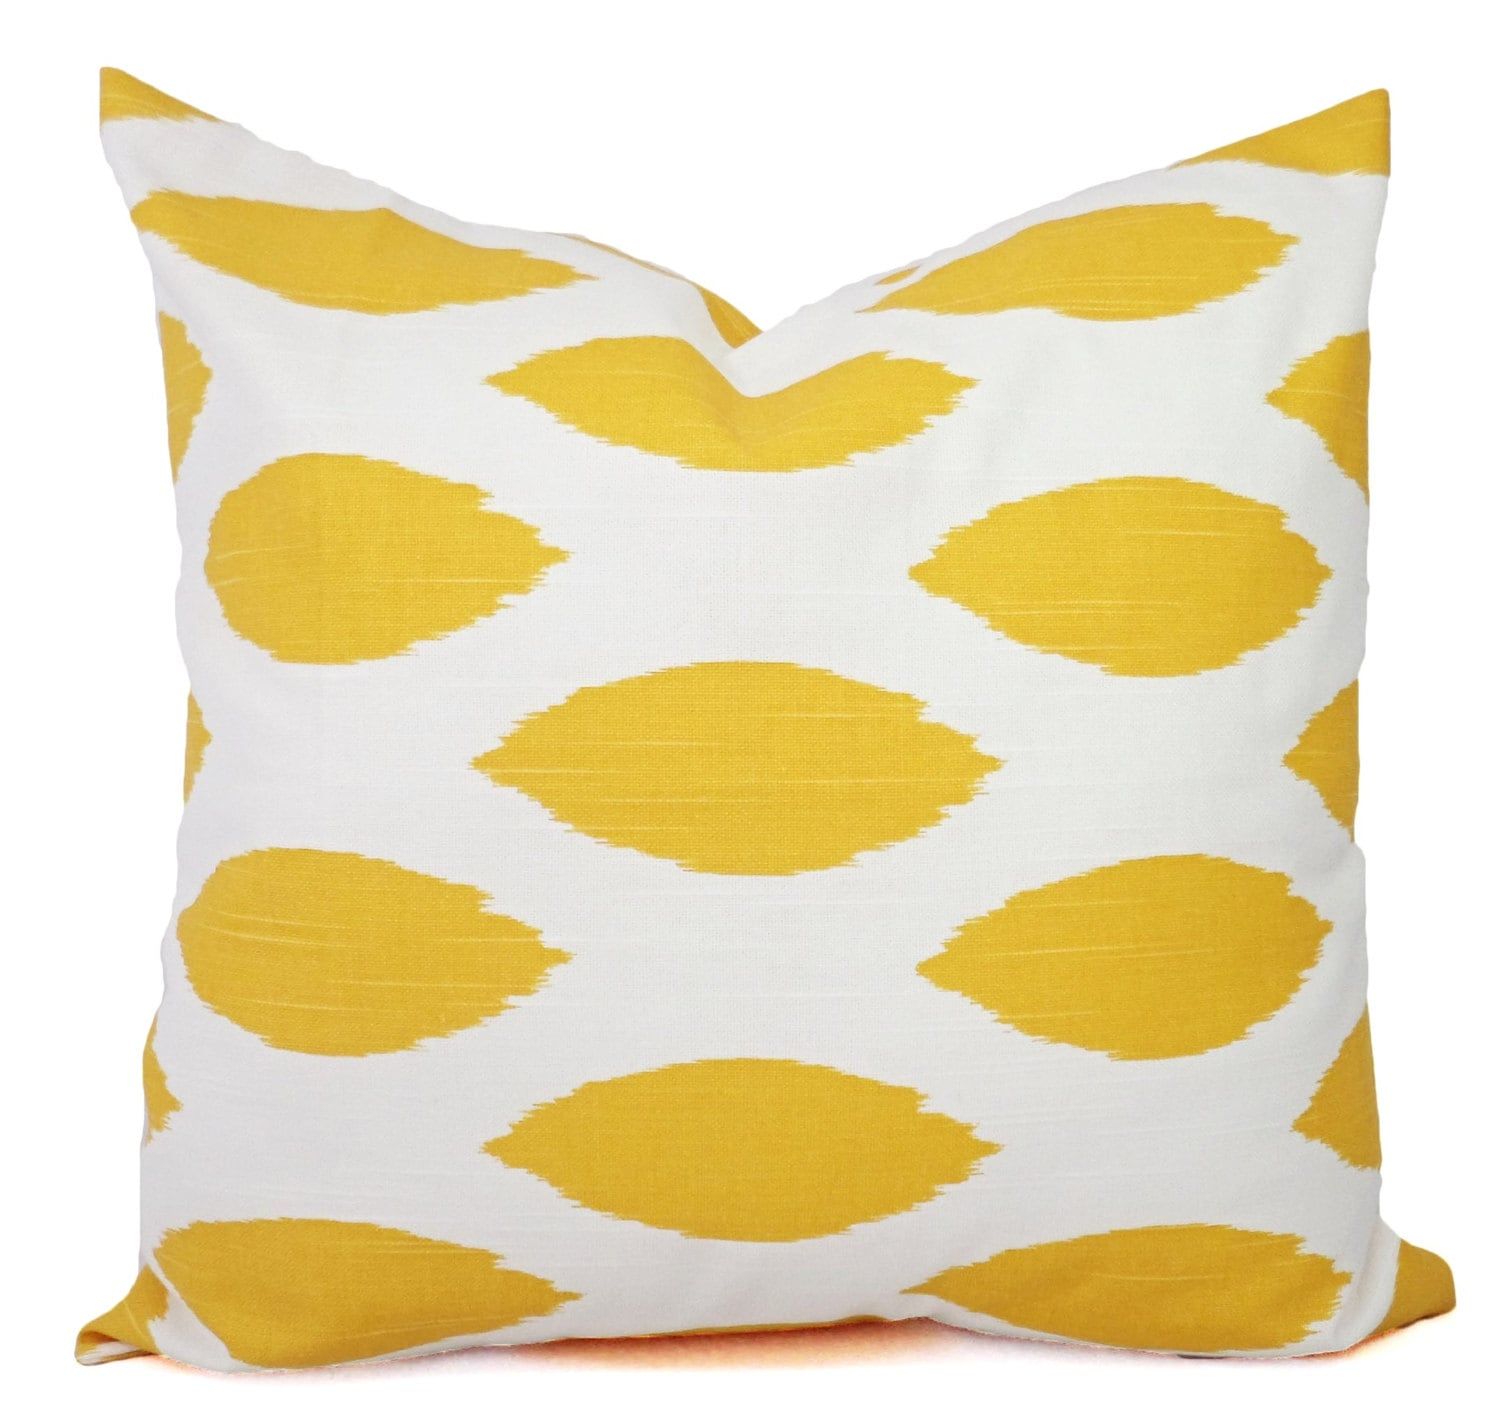 Throw Pillow Yellow : Yellow Throw Pillow Yellow and White Pillow Covers Yellow